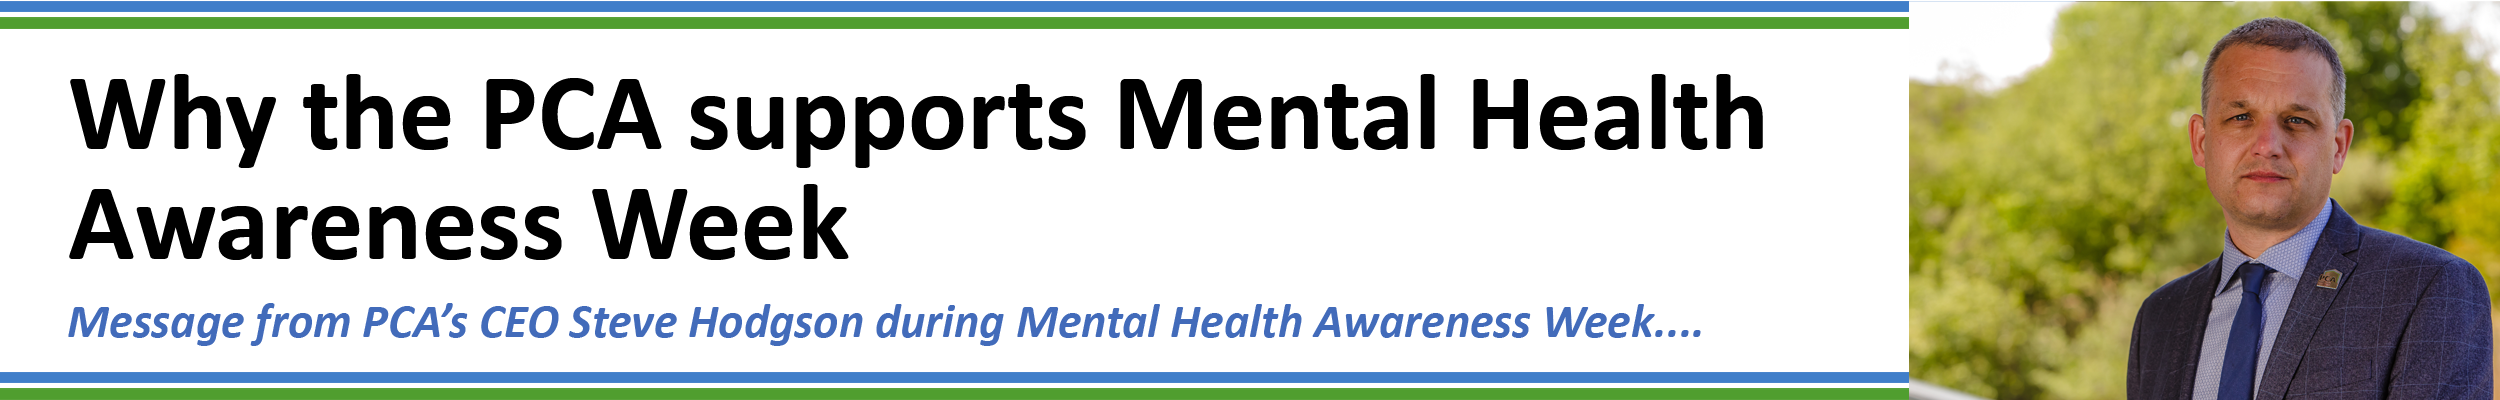 Steve_Why the PCA supports Mental Health Awareness Week